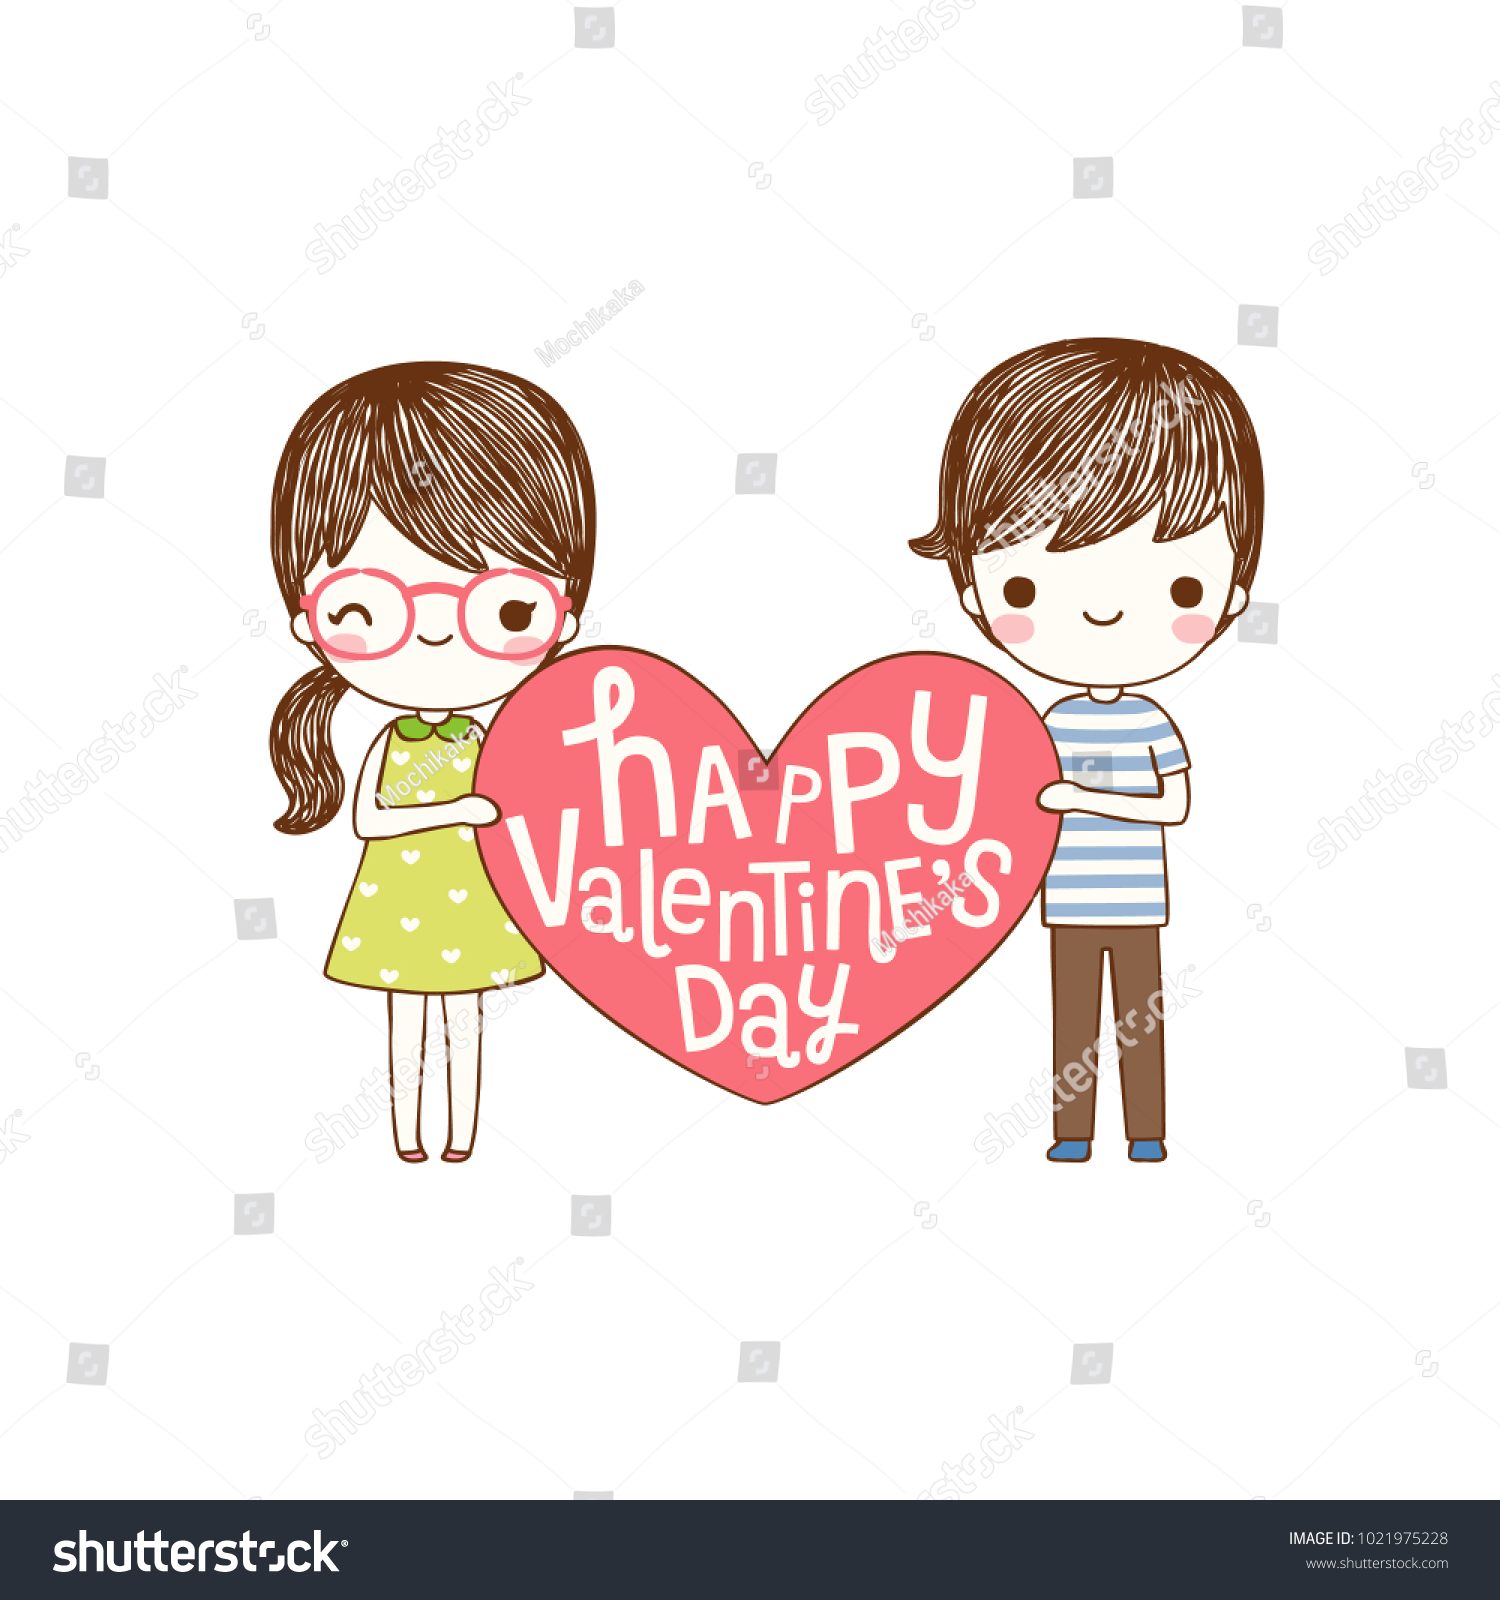 Happy Valentines Day Card Lovely Couple Stock Vector 1021975228 ...